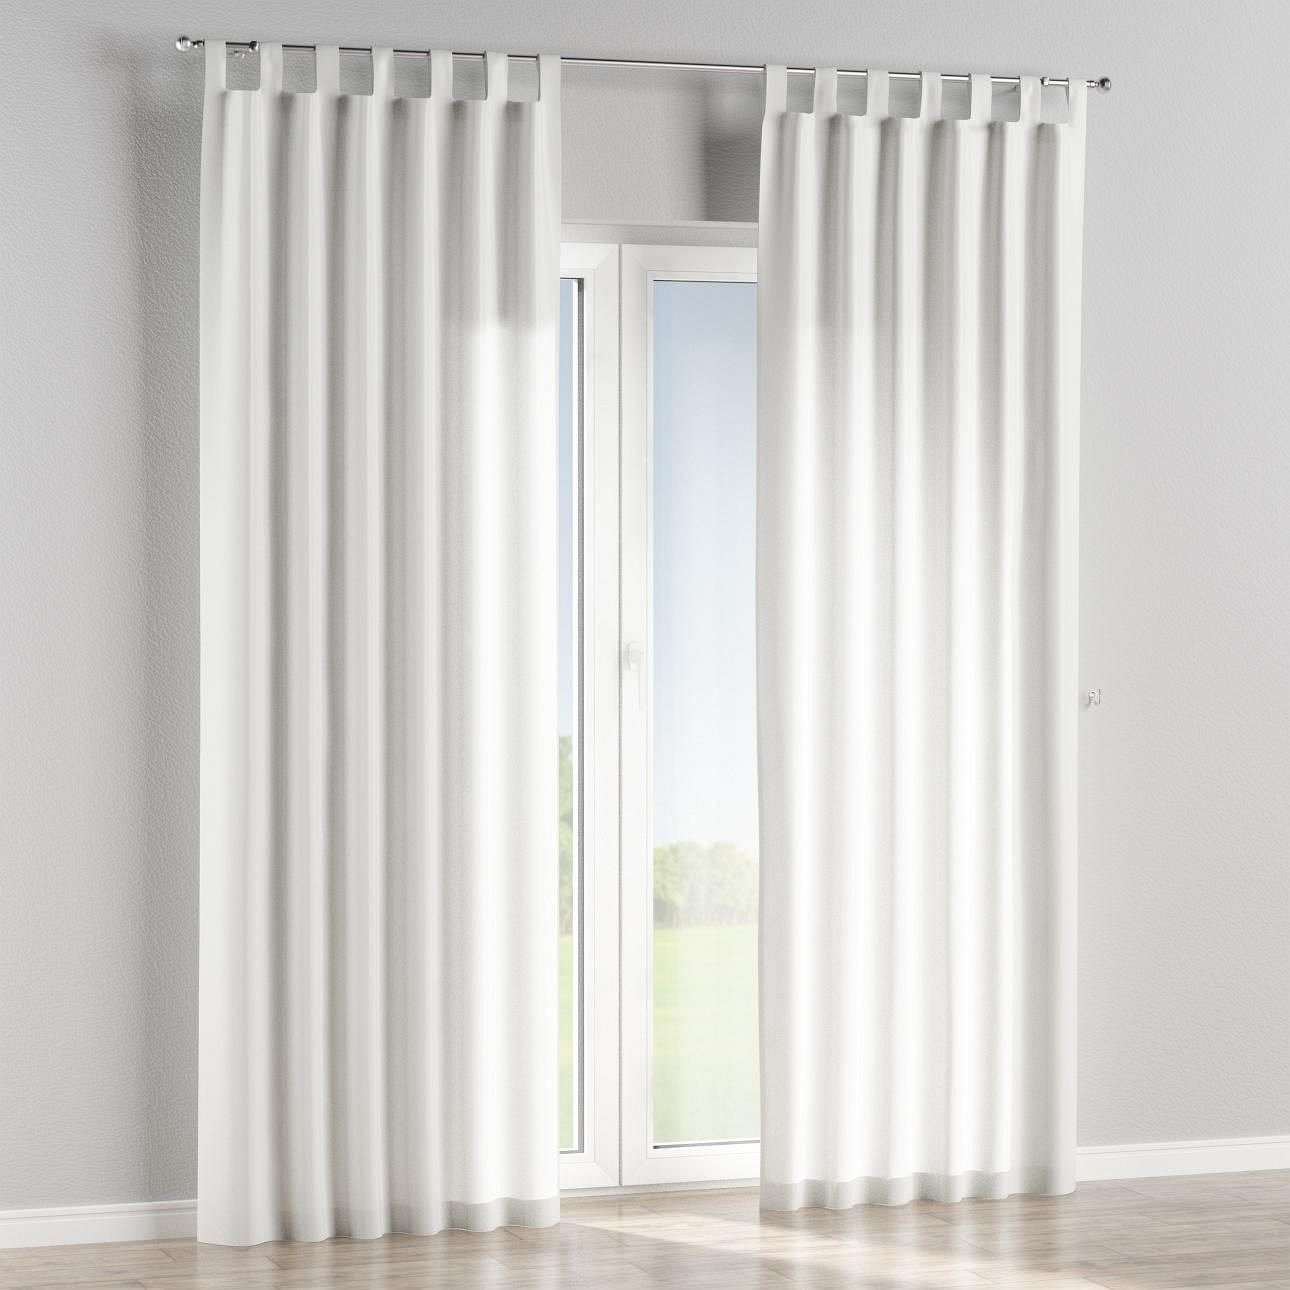 Tab top lined curtains in collection Bristol, fabric: 125-32